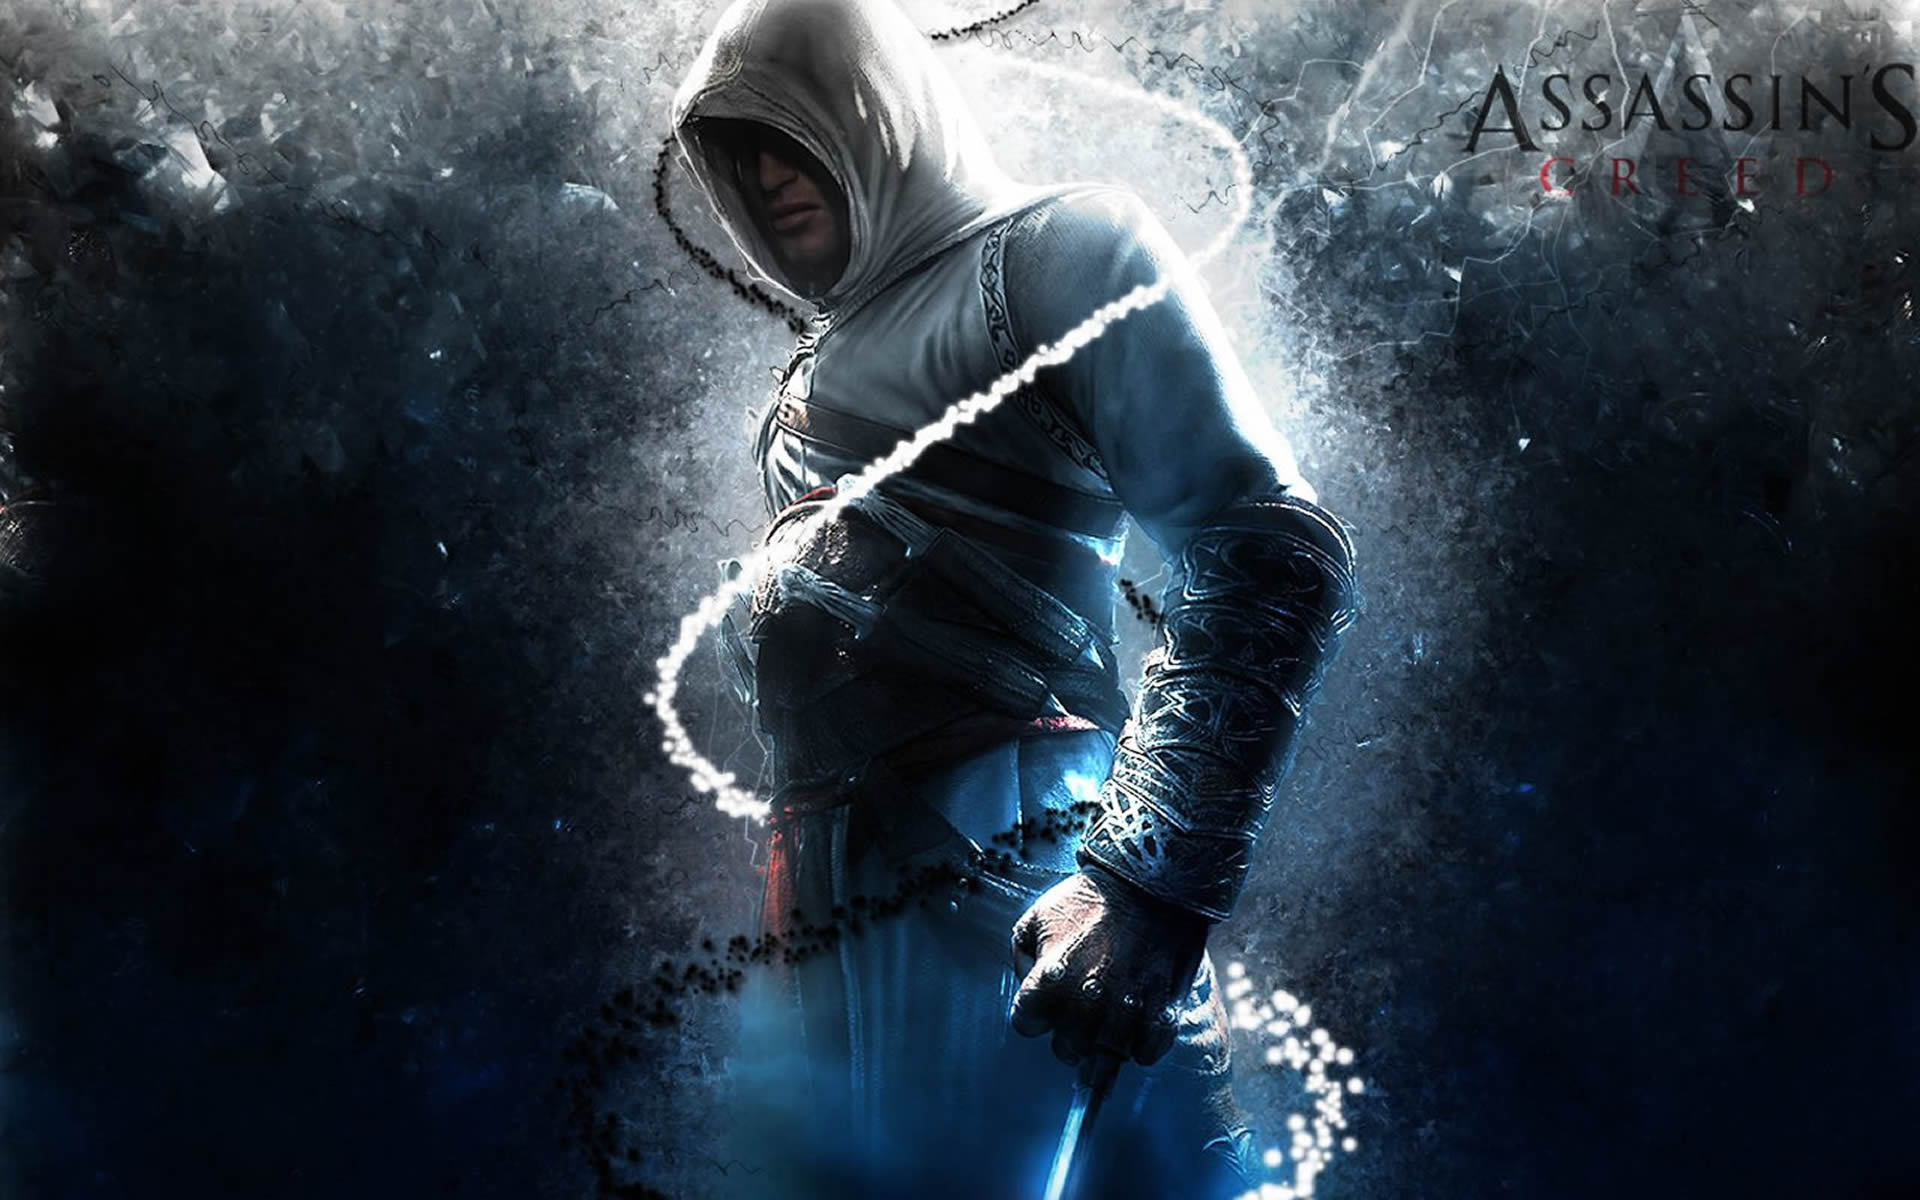 Uncharted Iphone Wallpaper Assassin S Creed What You Like Games Of Course